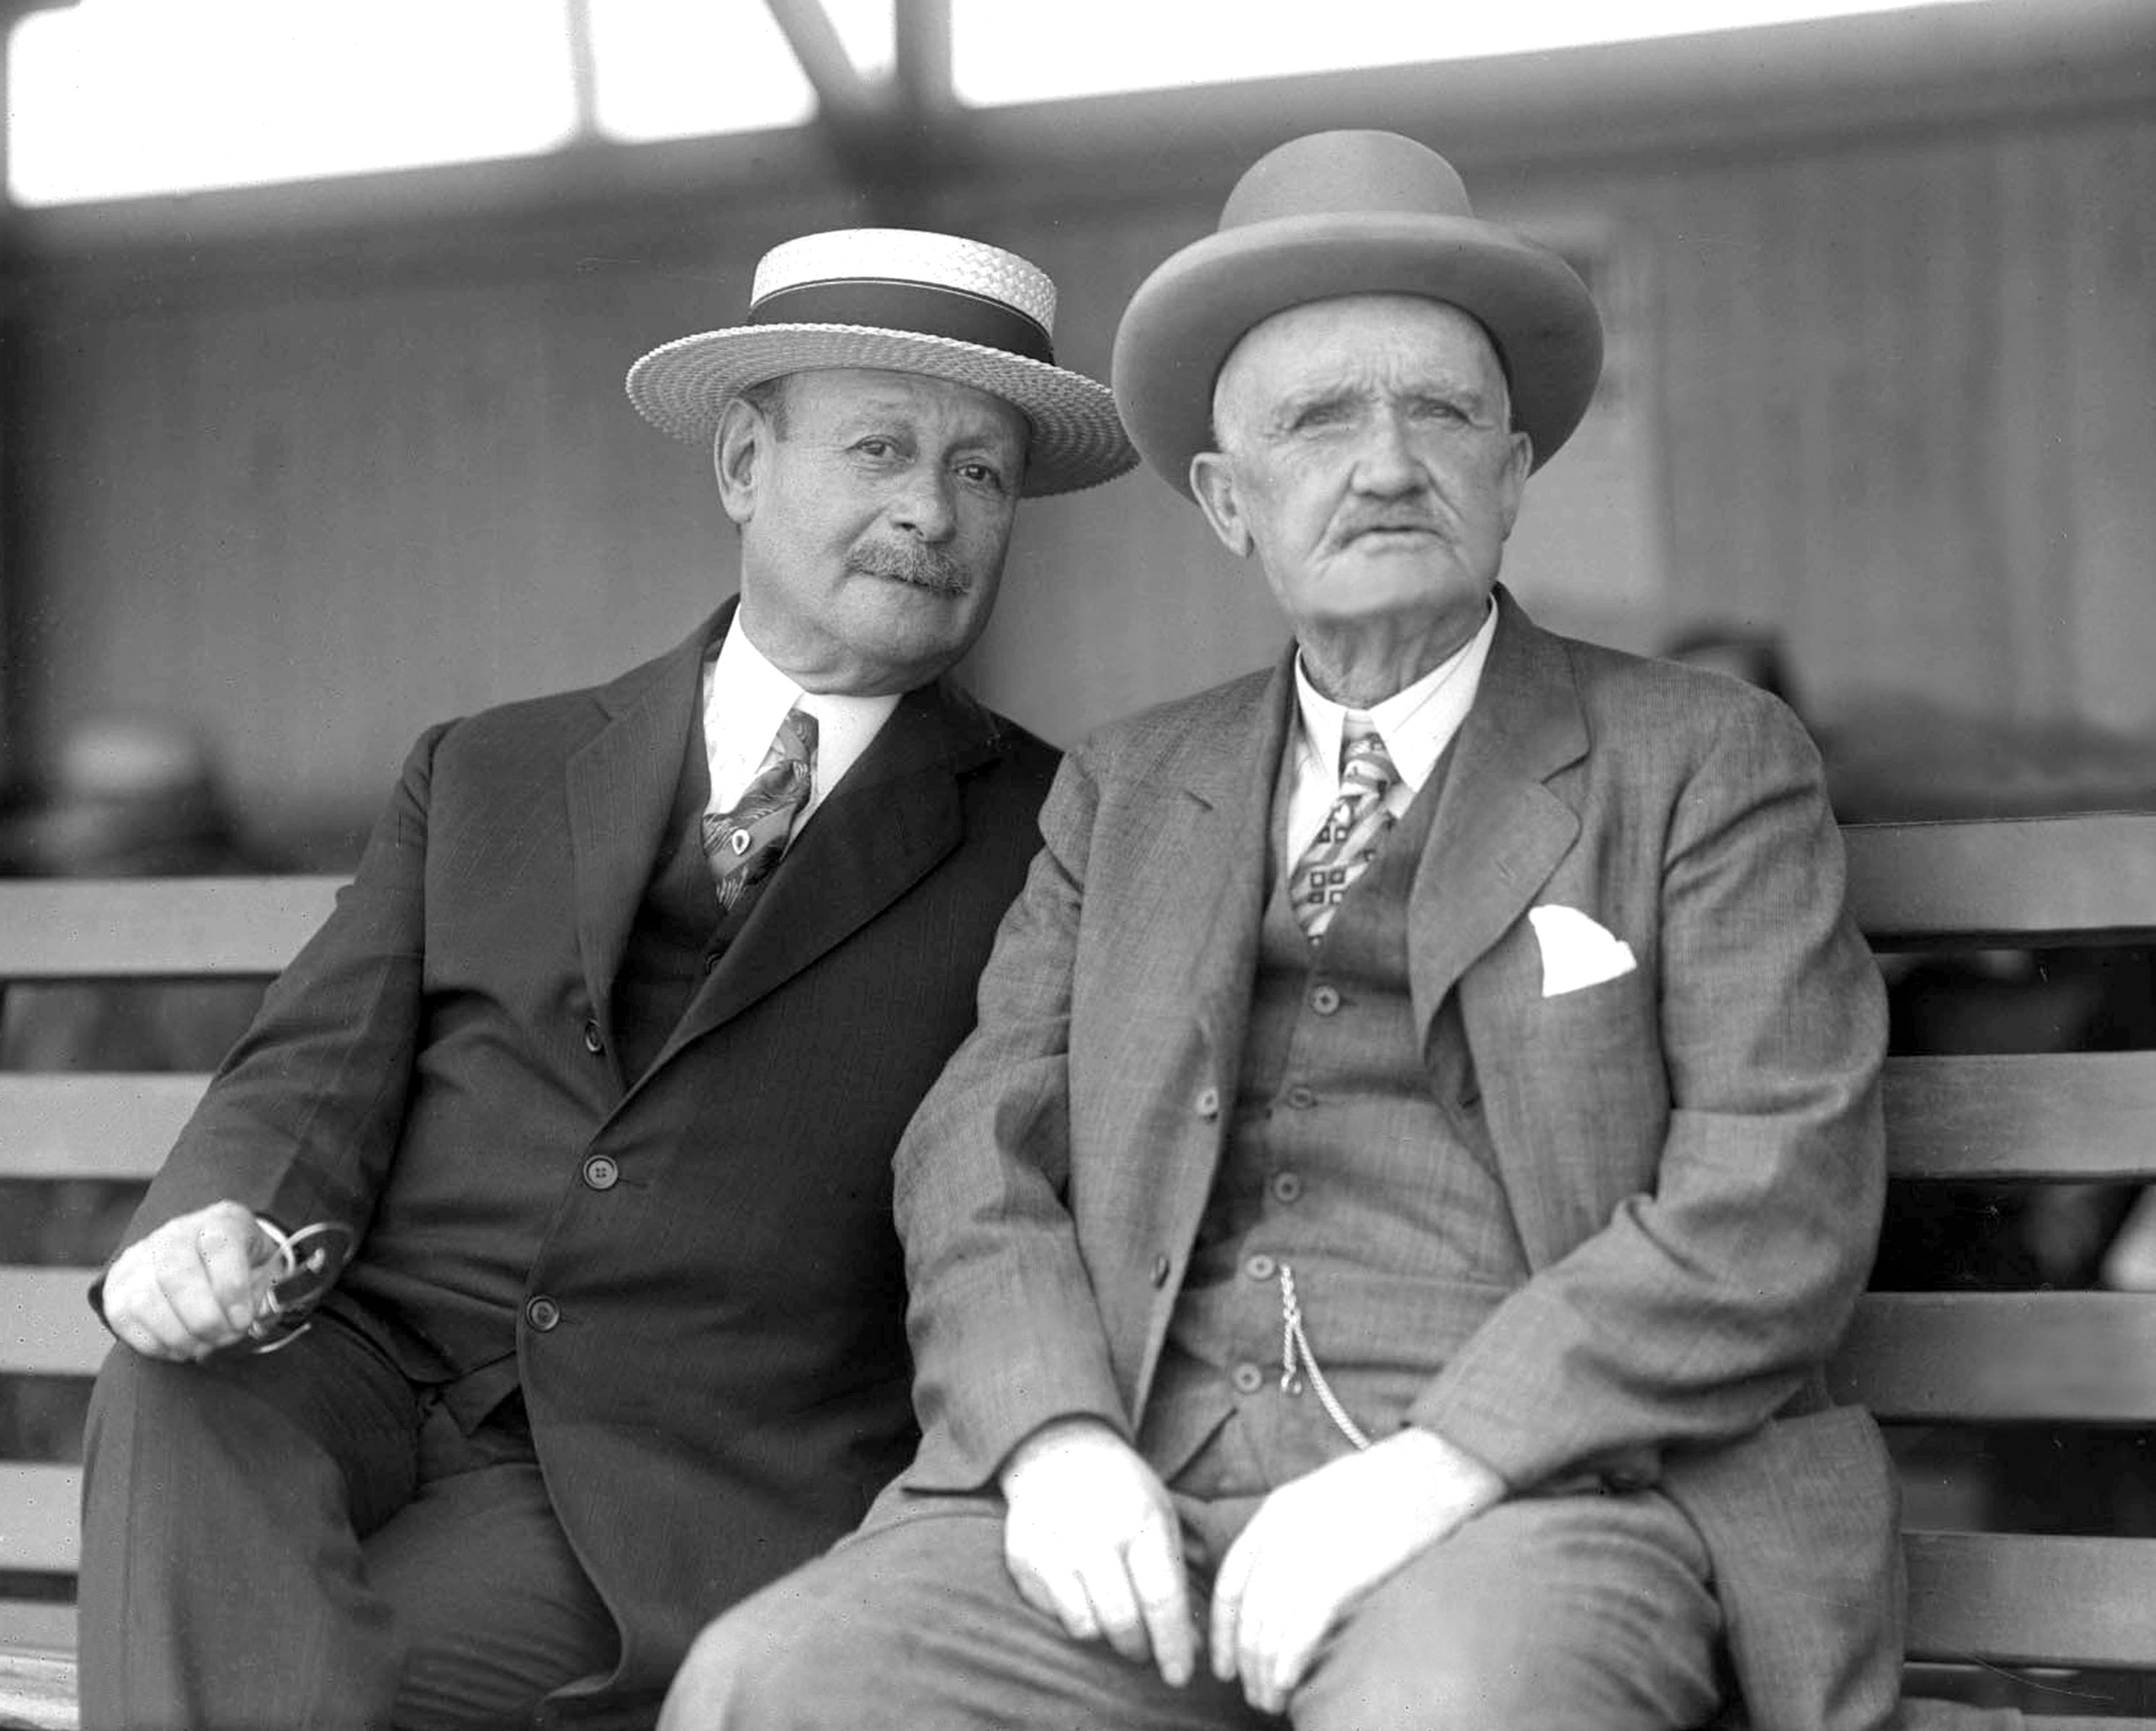 J. Adler and Matthew Byrnes in an undated photograph (Keeneland Library Cook Collection)